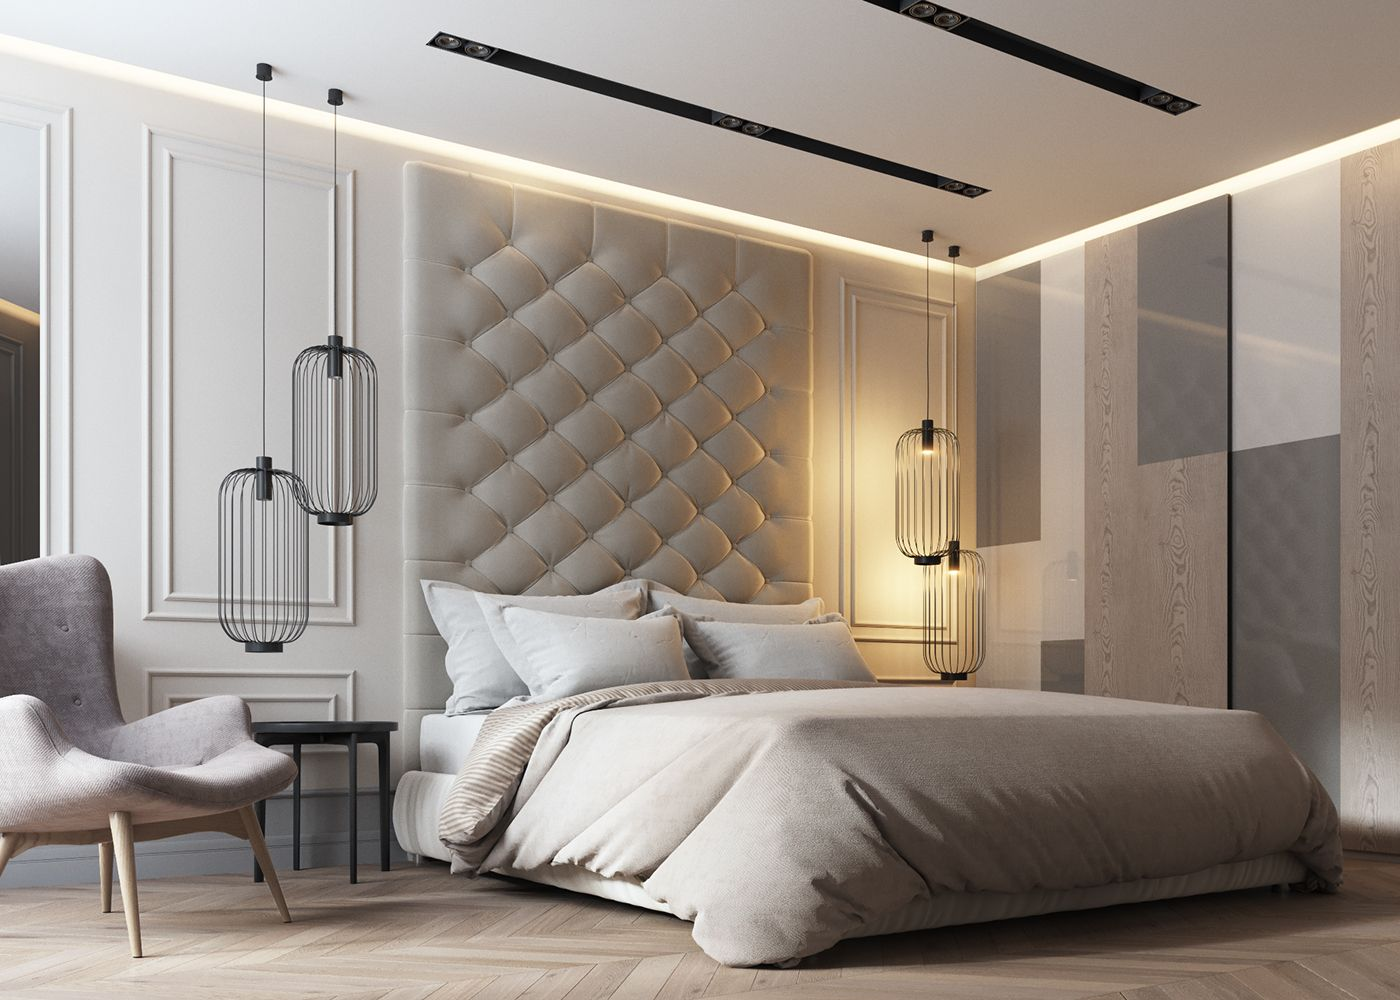 Bedroom Design Decor apartments in ukrainedesign: de&de interior studiovisualization